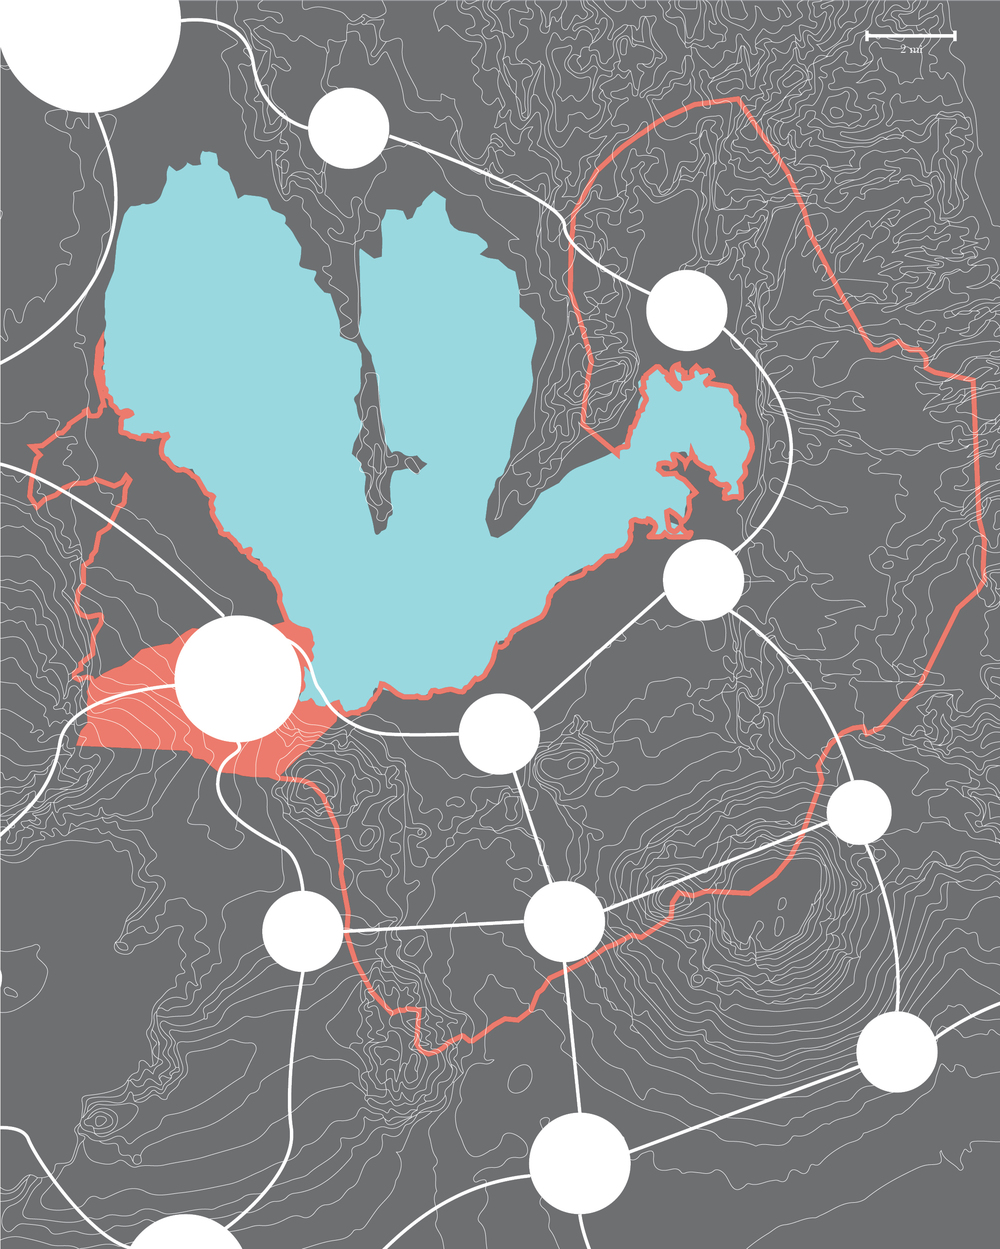 Region Masterplan Simulation